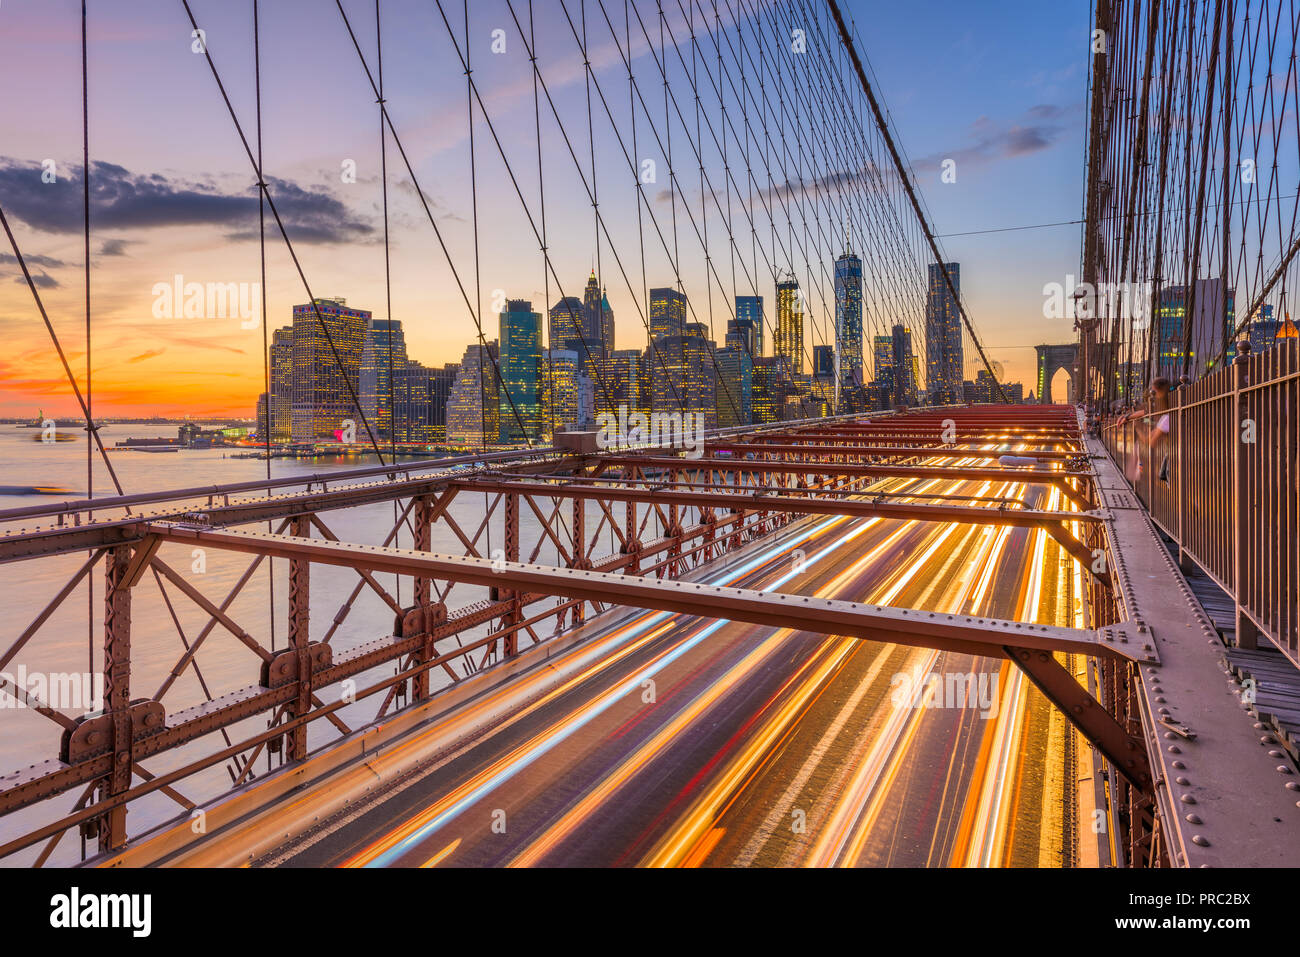 New York, New York, USA Lower Manhattan skyline after sunset from the Brooklyn Bridge. - Stock Image